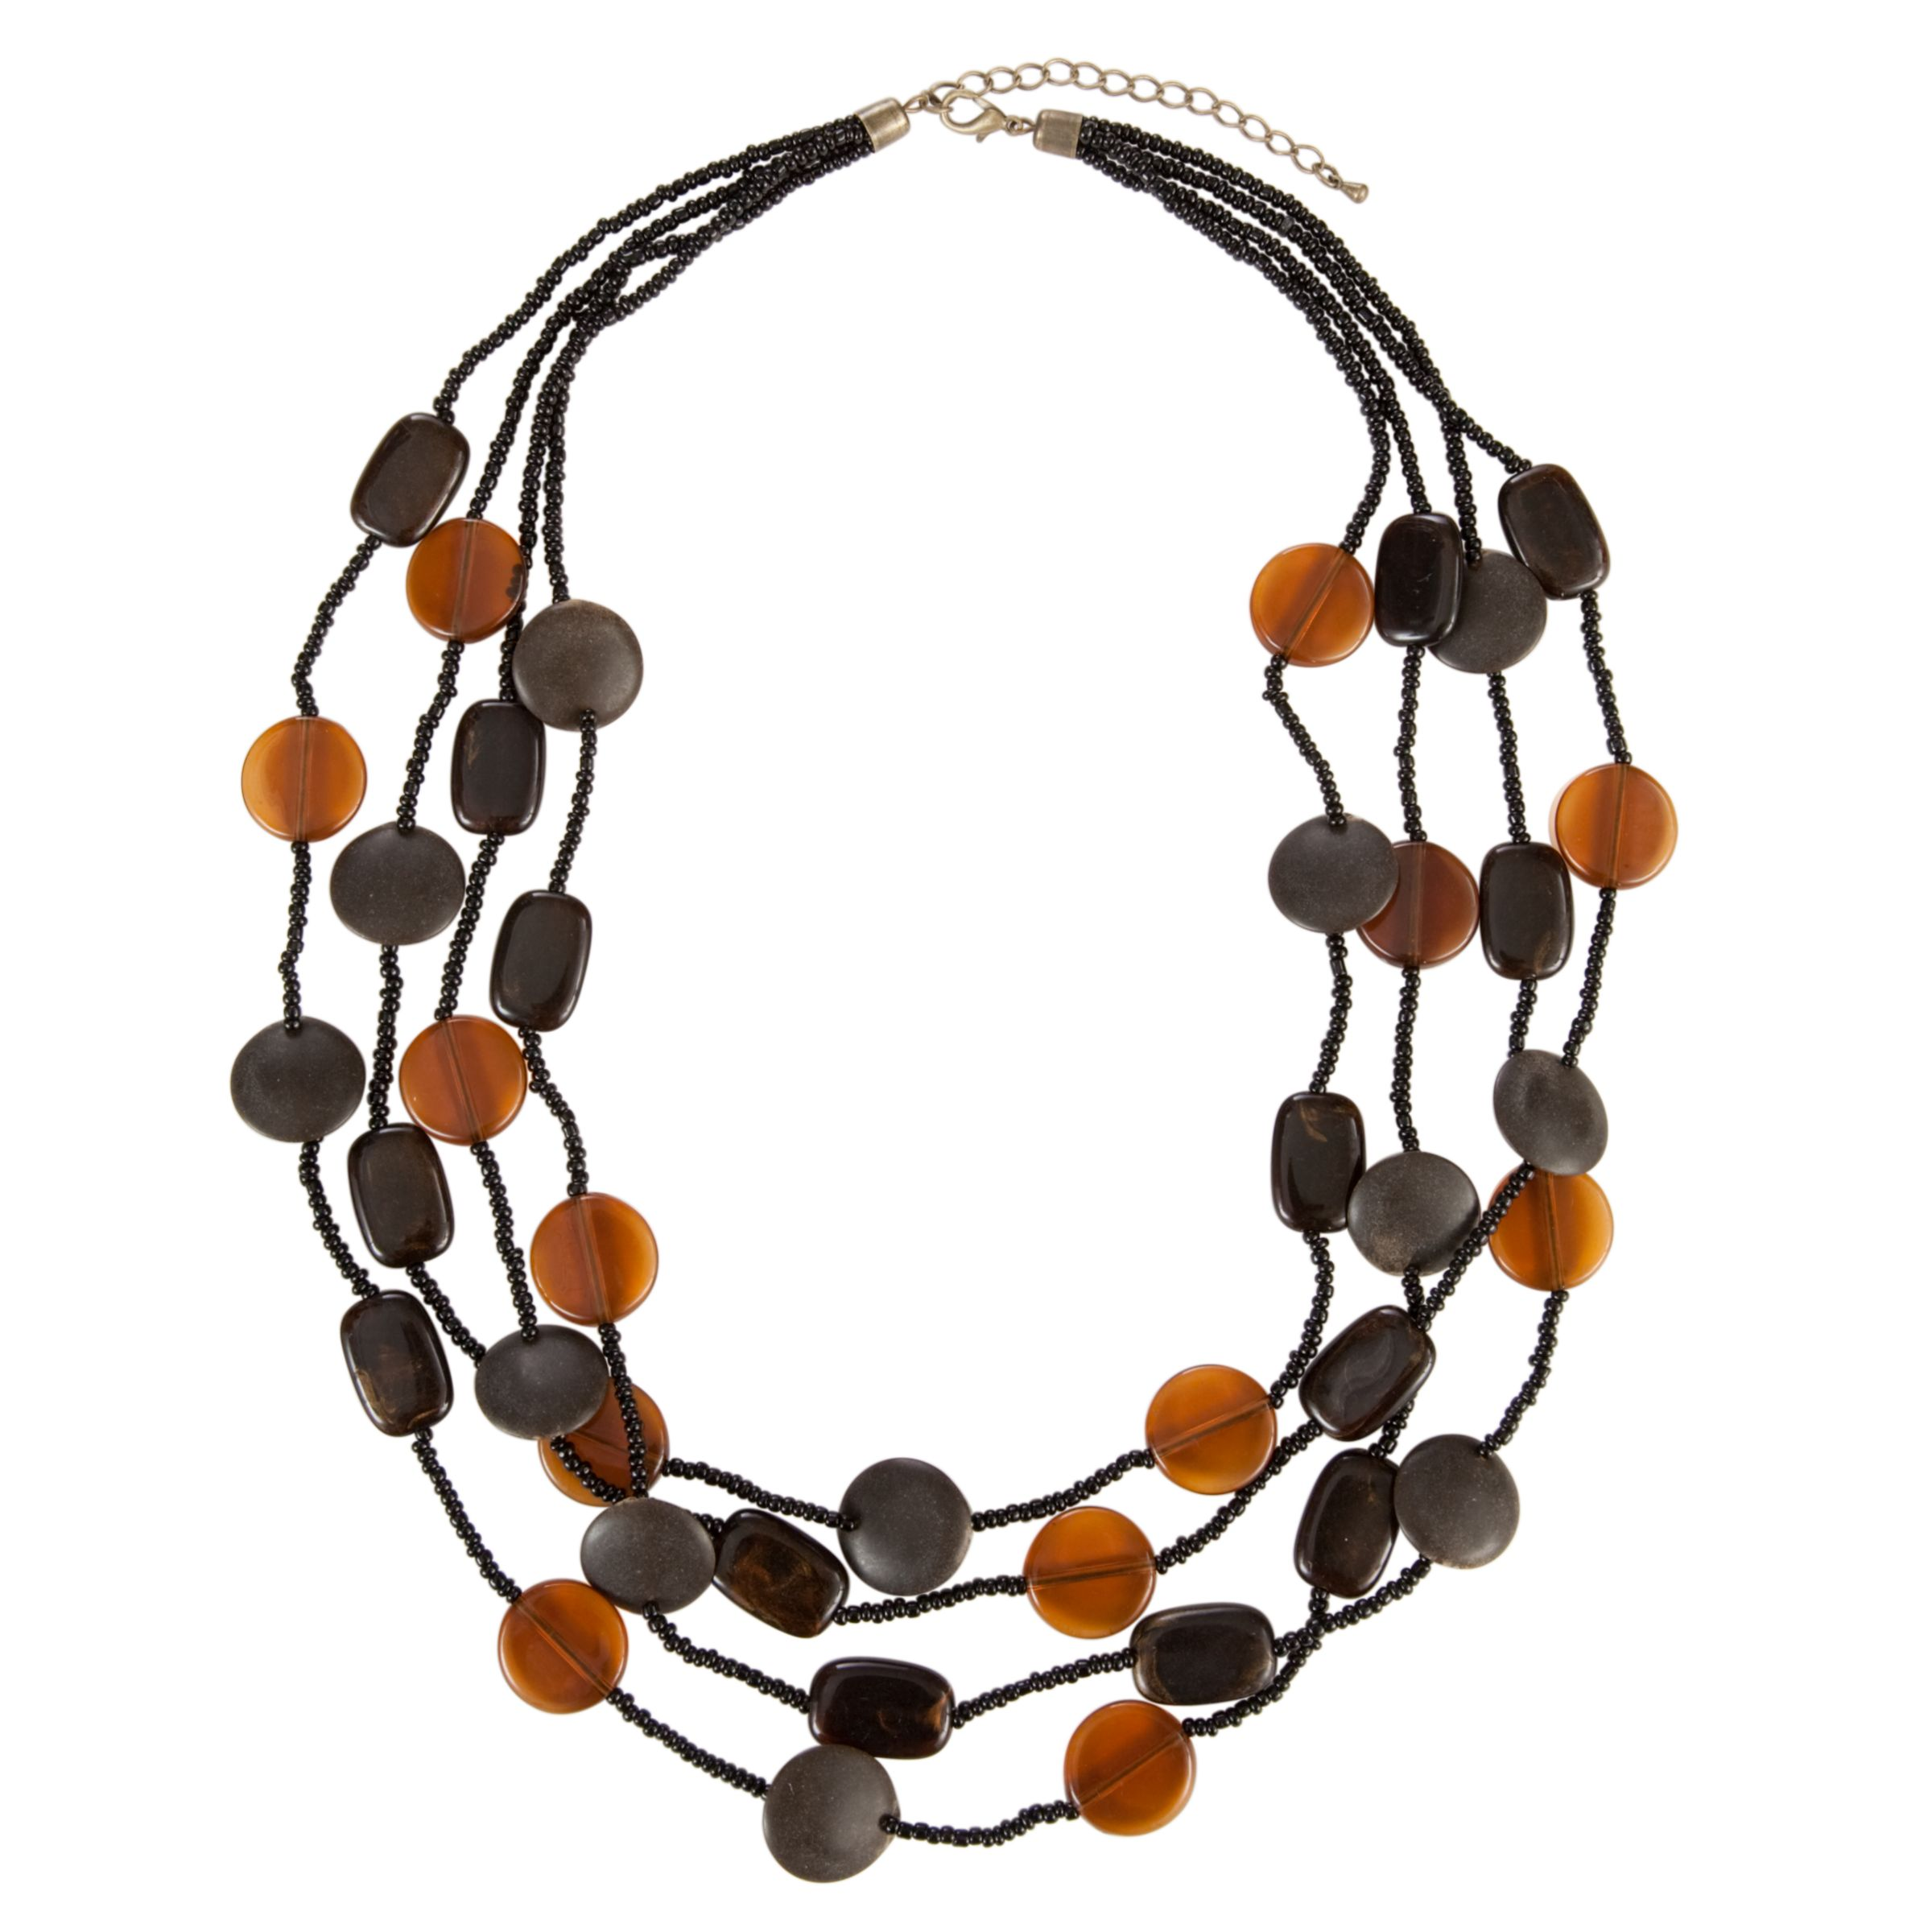 John Lewis Nordic 4 Strand Seed Beaded Wood and Acrylic Necklace, Black/Amber